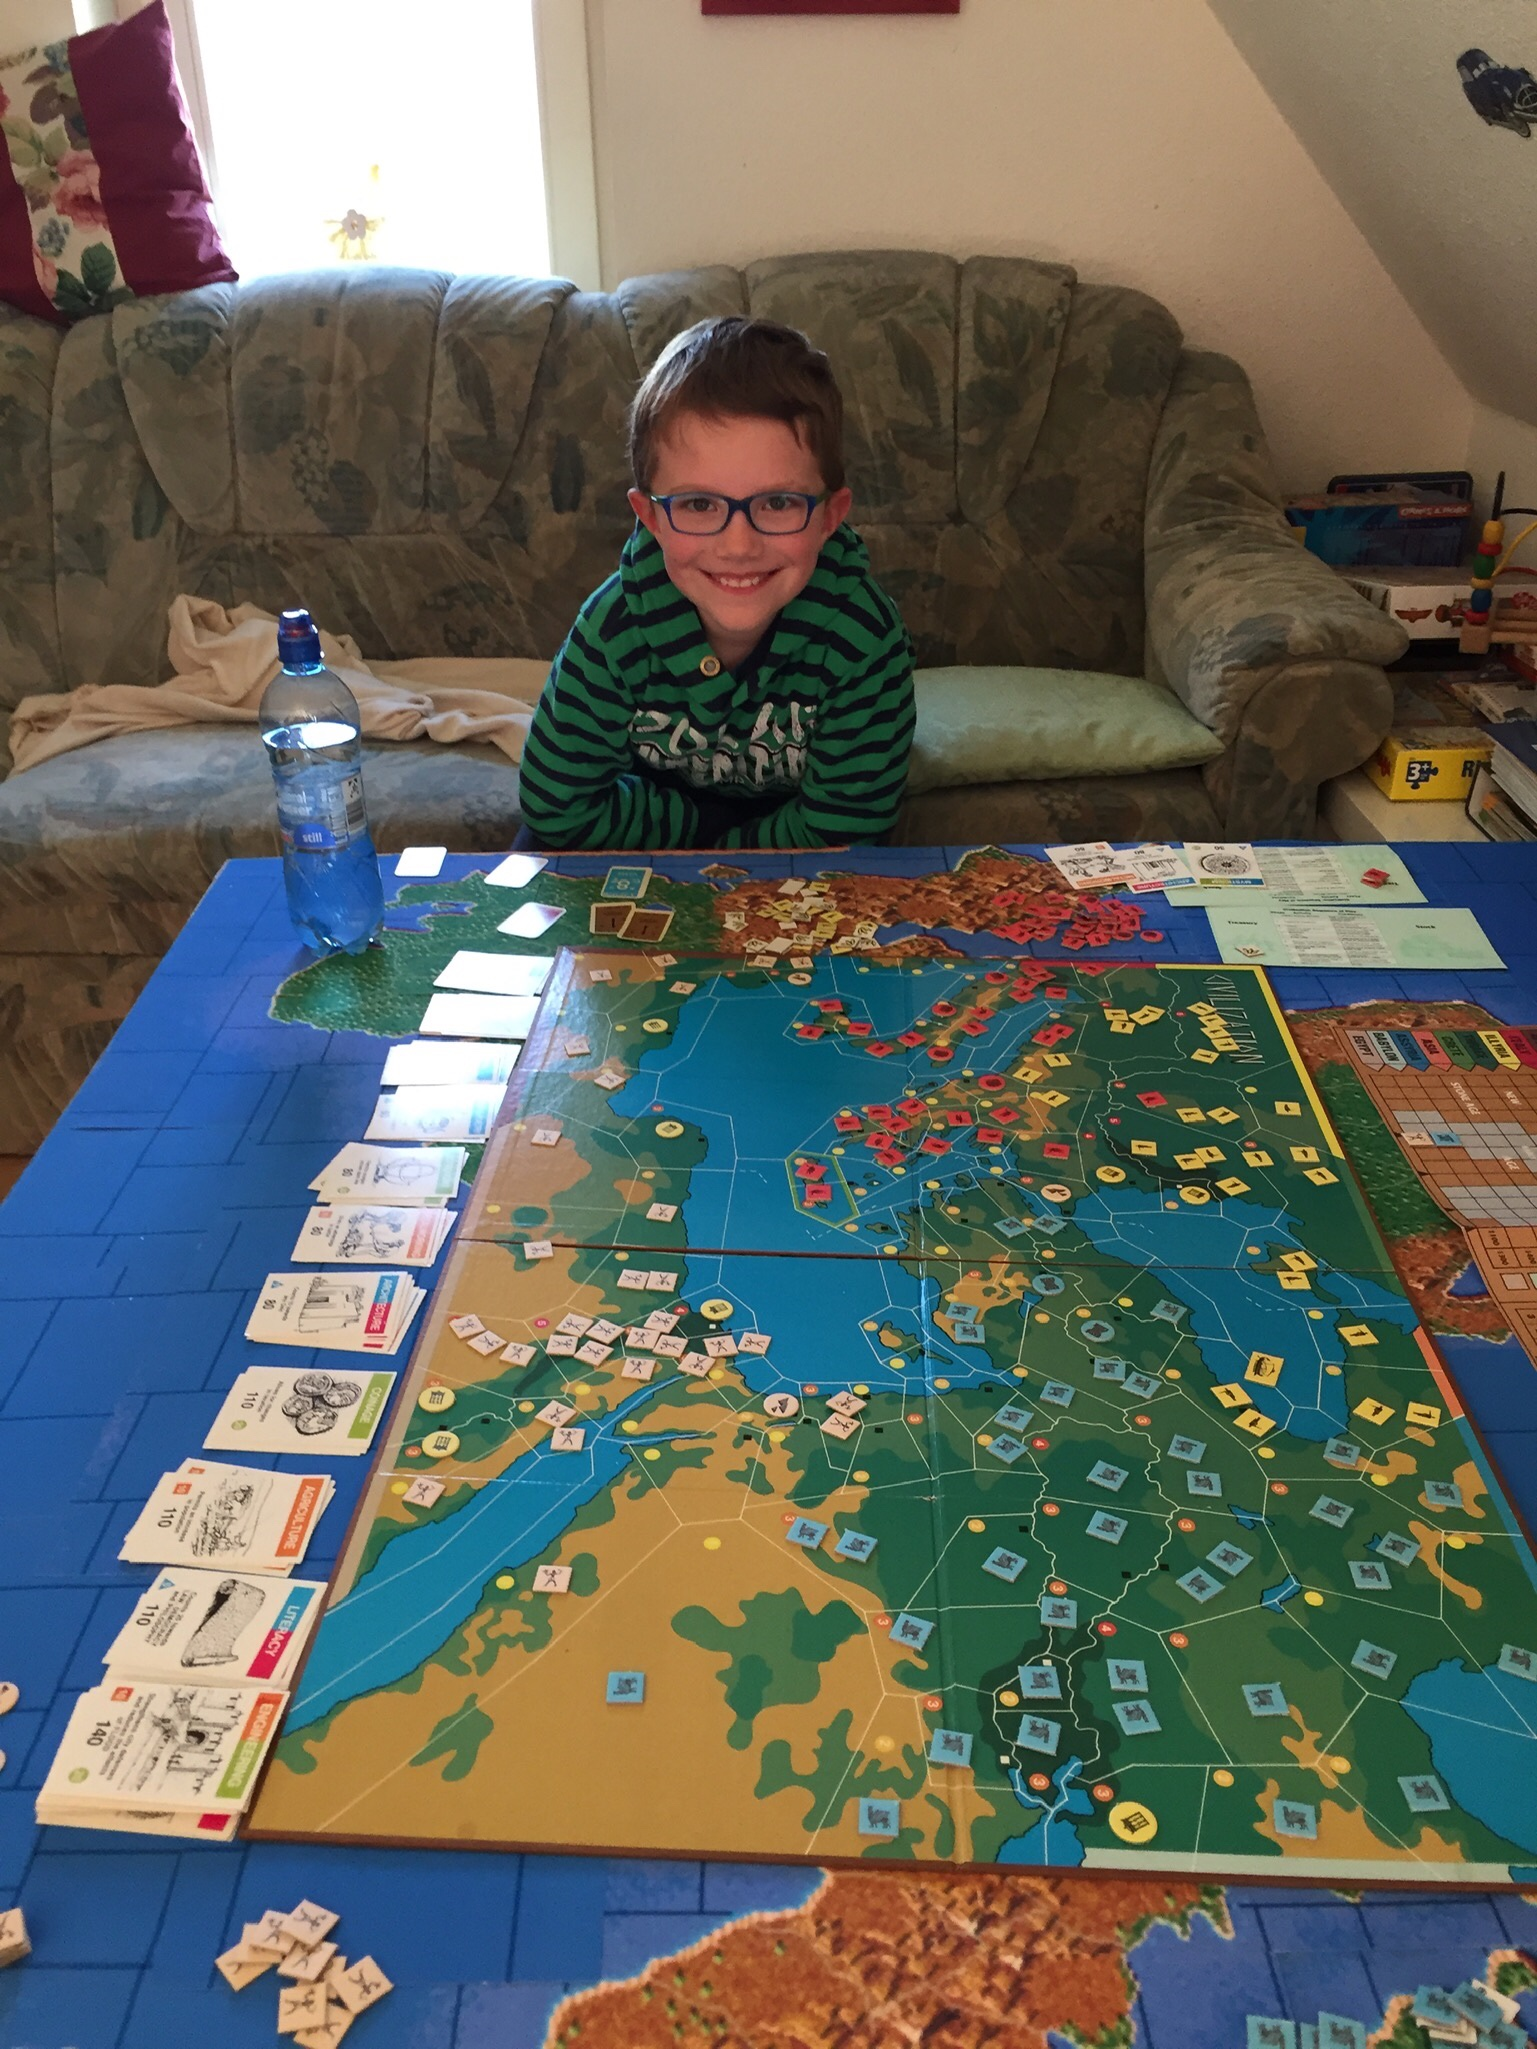 Lukas Bernhardt at Home, August 2019. Playing Civilization, an Avalon Hill Board Game